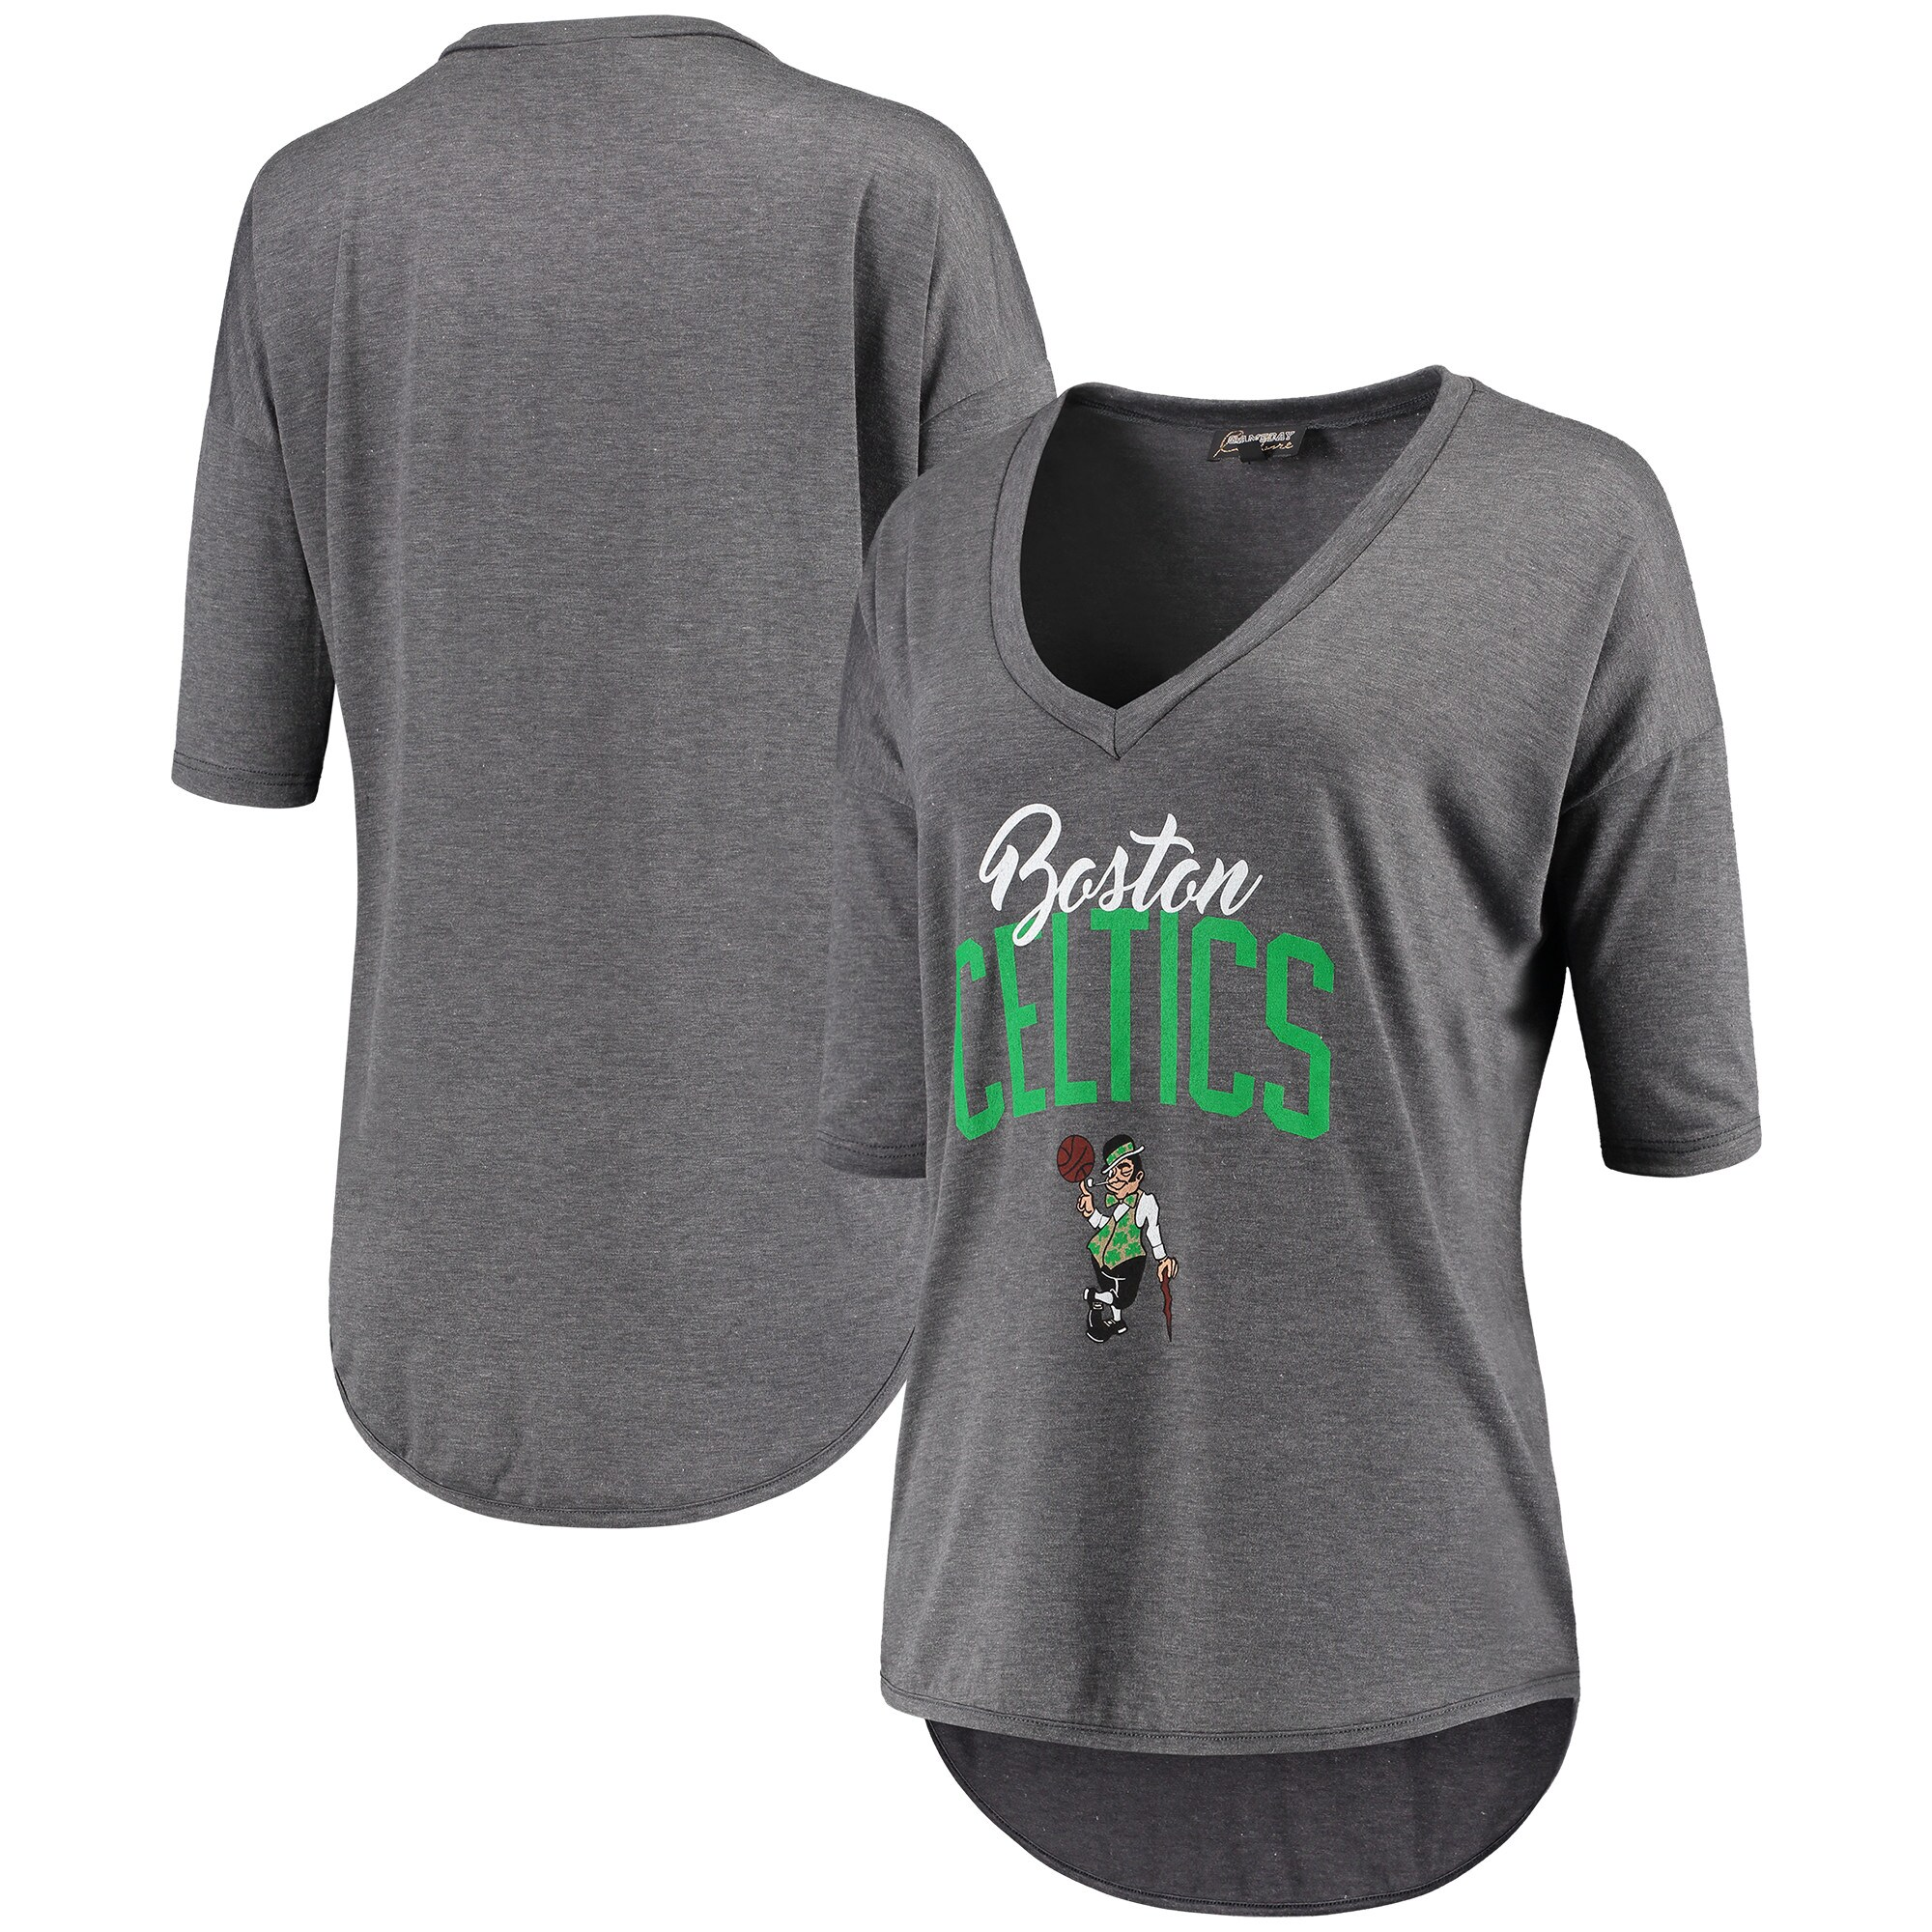 Boston Celtics Women's Deep V-Neck Tri-Blend Half-Sleeve T-Shirt - Gray